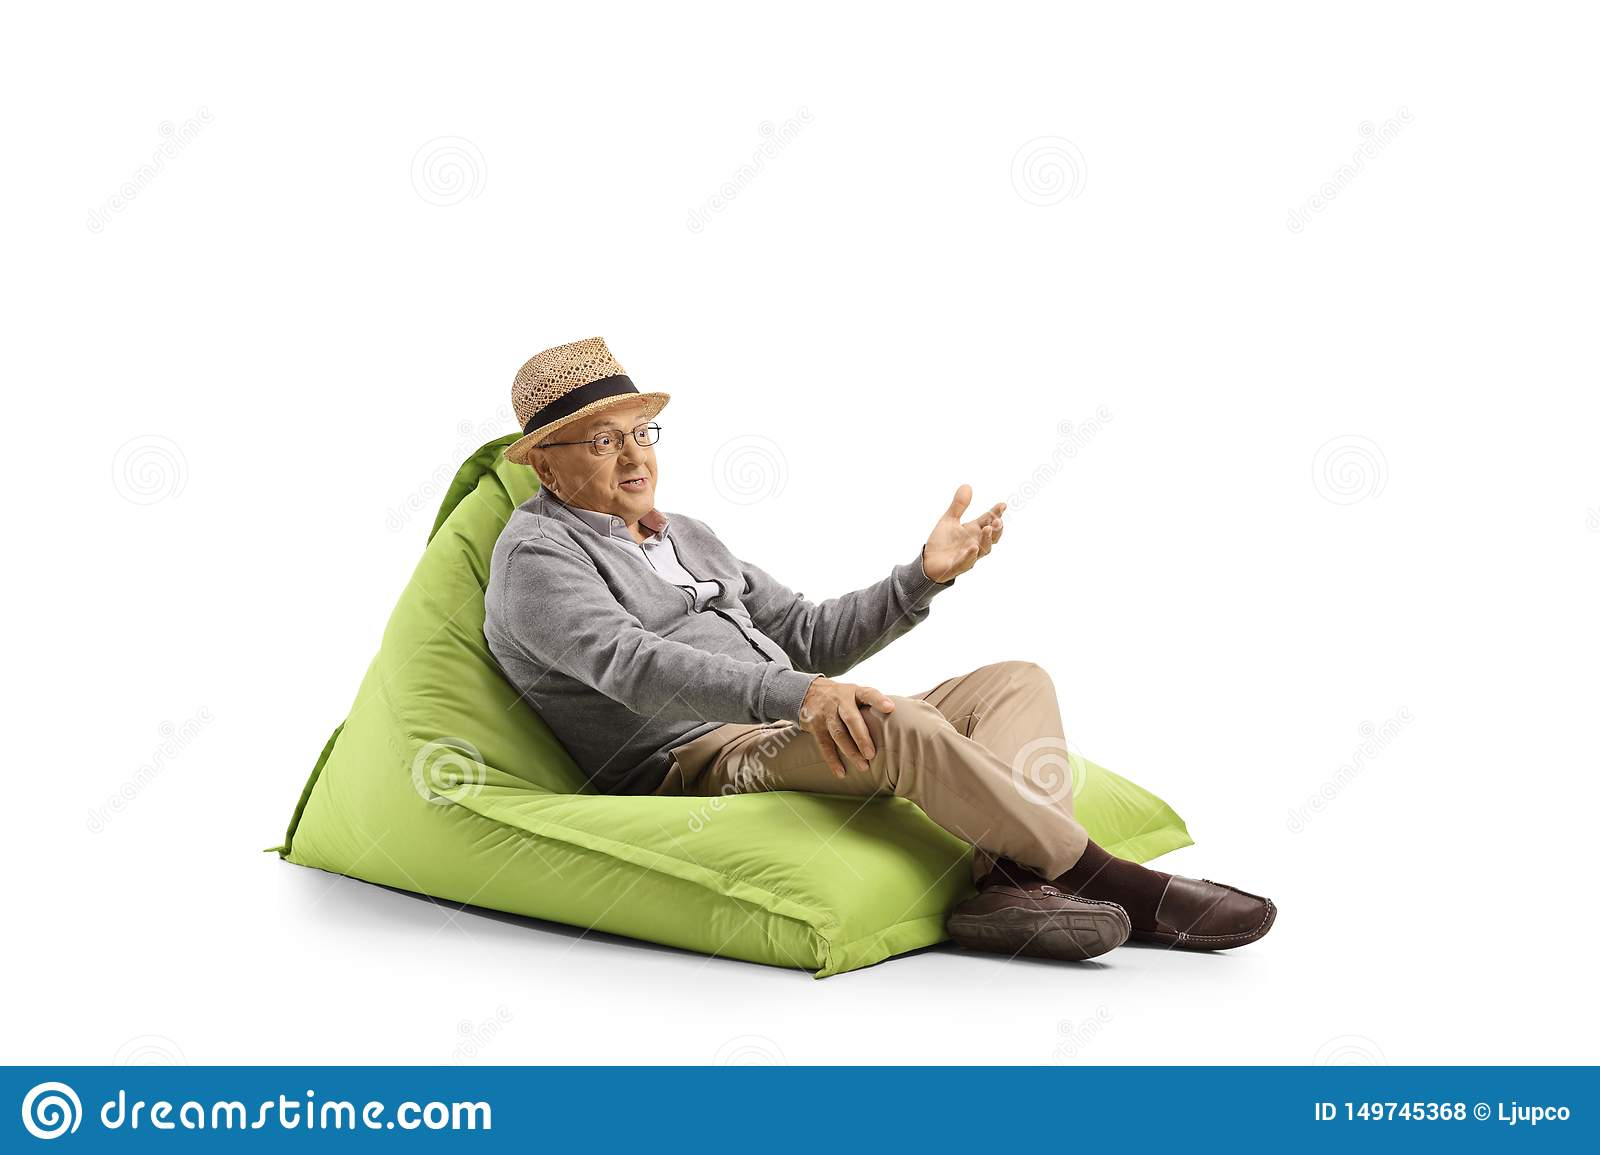 Senior man with face expression resting on a bean-bag armchair and gesturing with hand